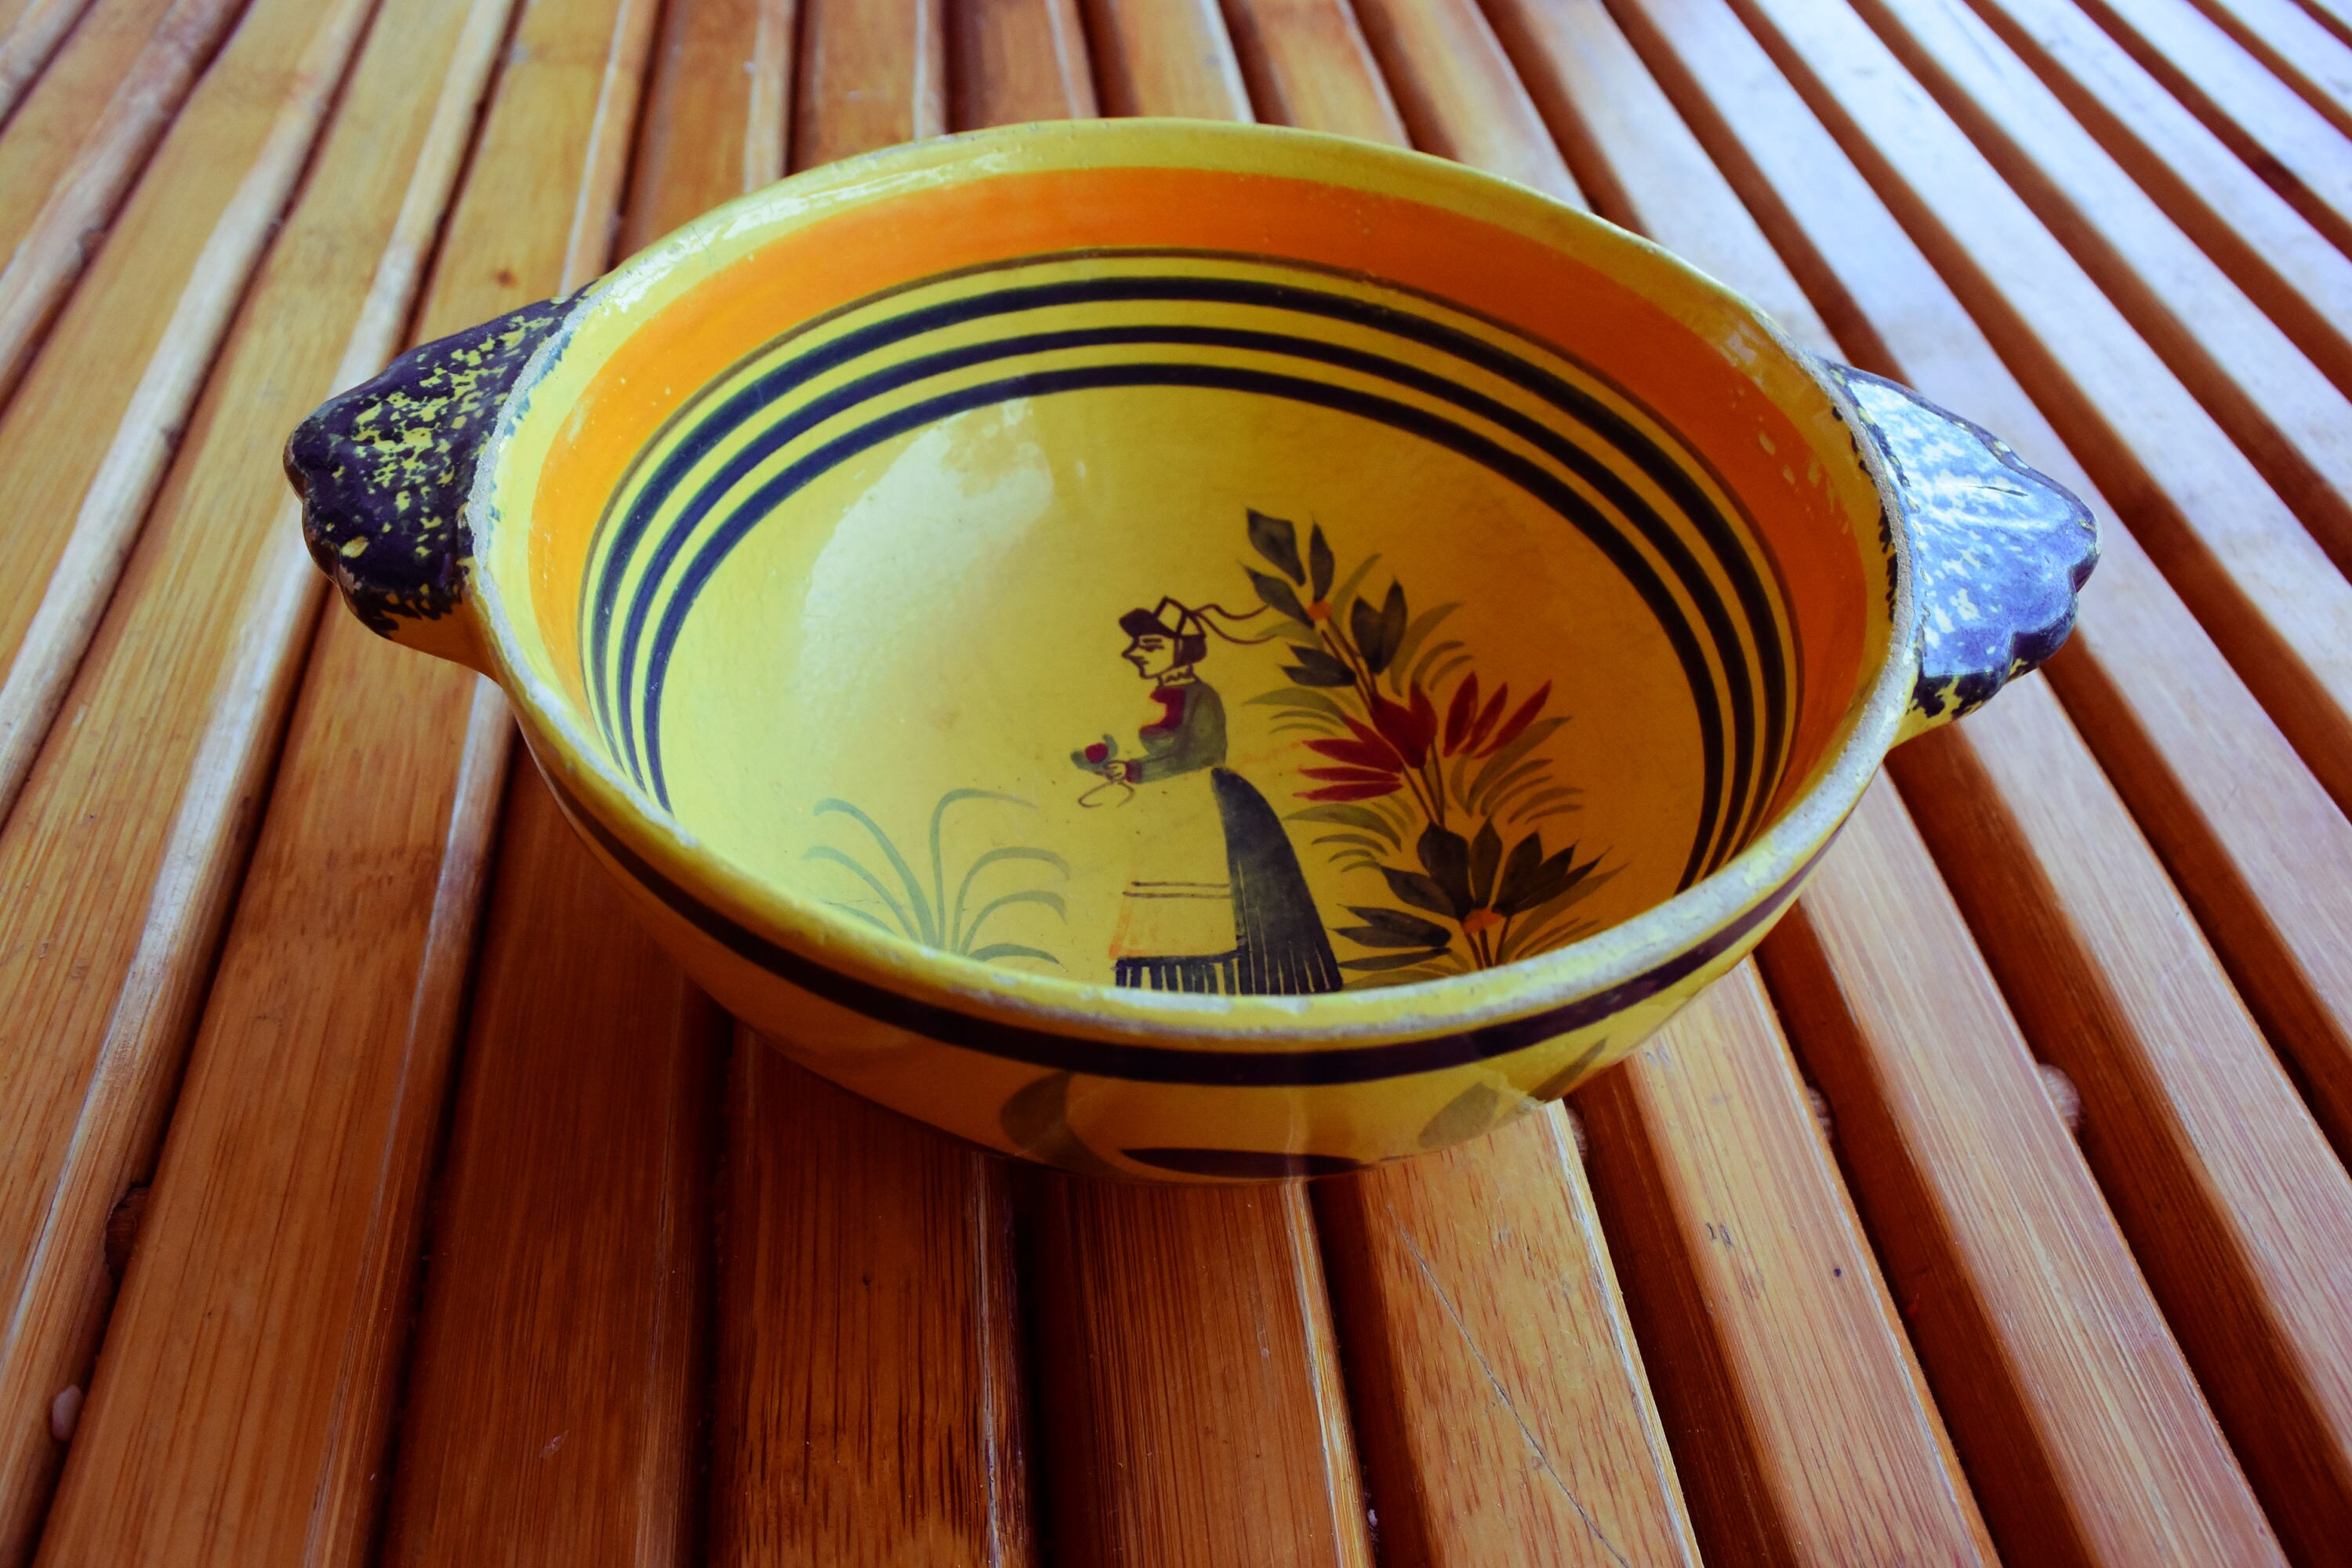 Deco Quimper Bowl By Quimper Signed Henriot Art Deco Made In France